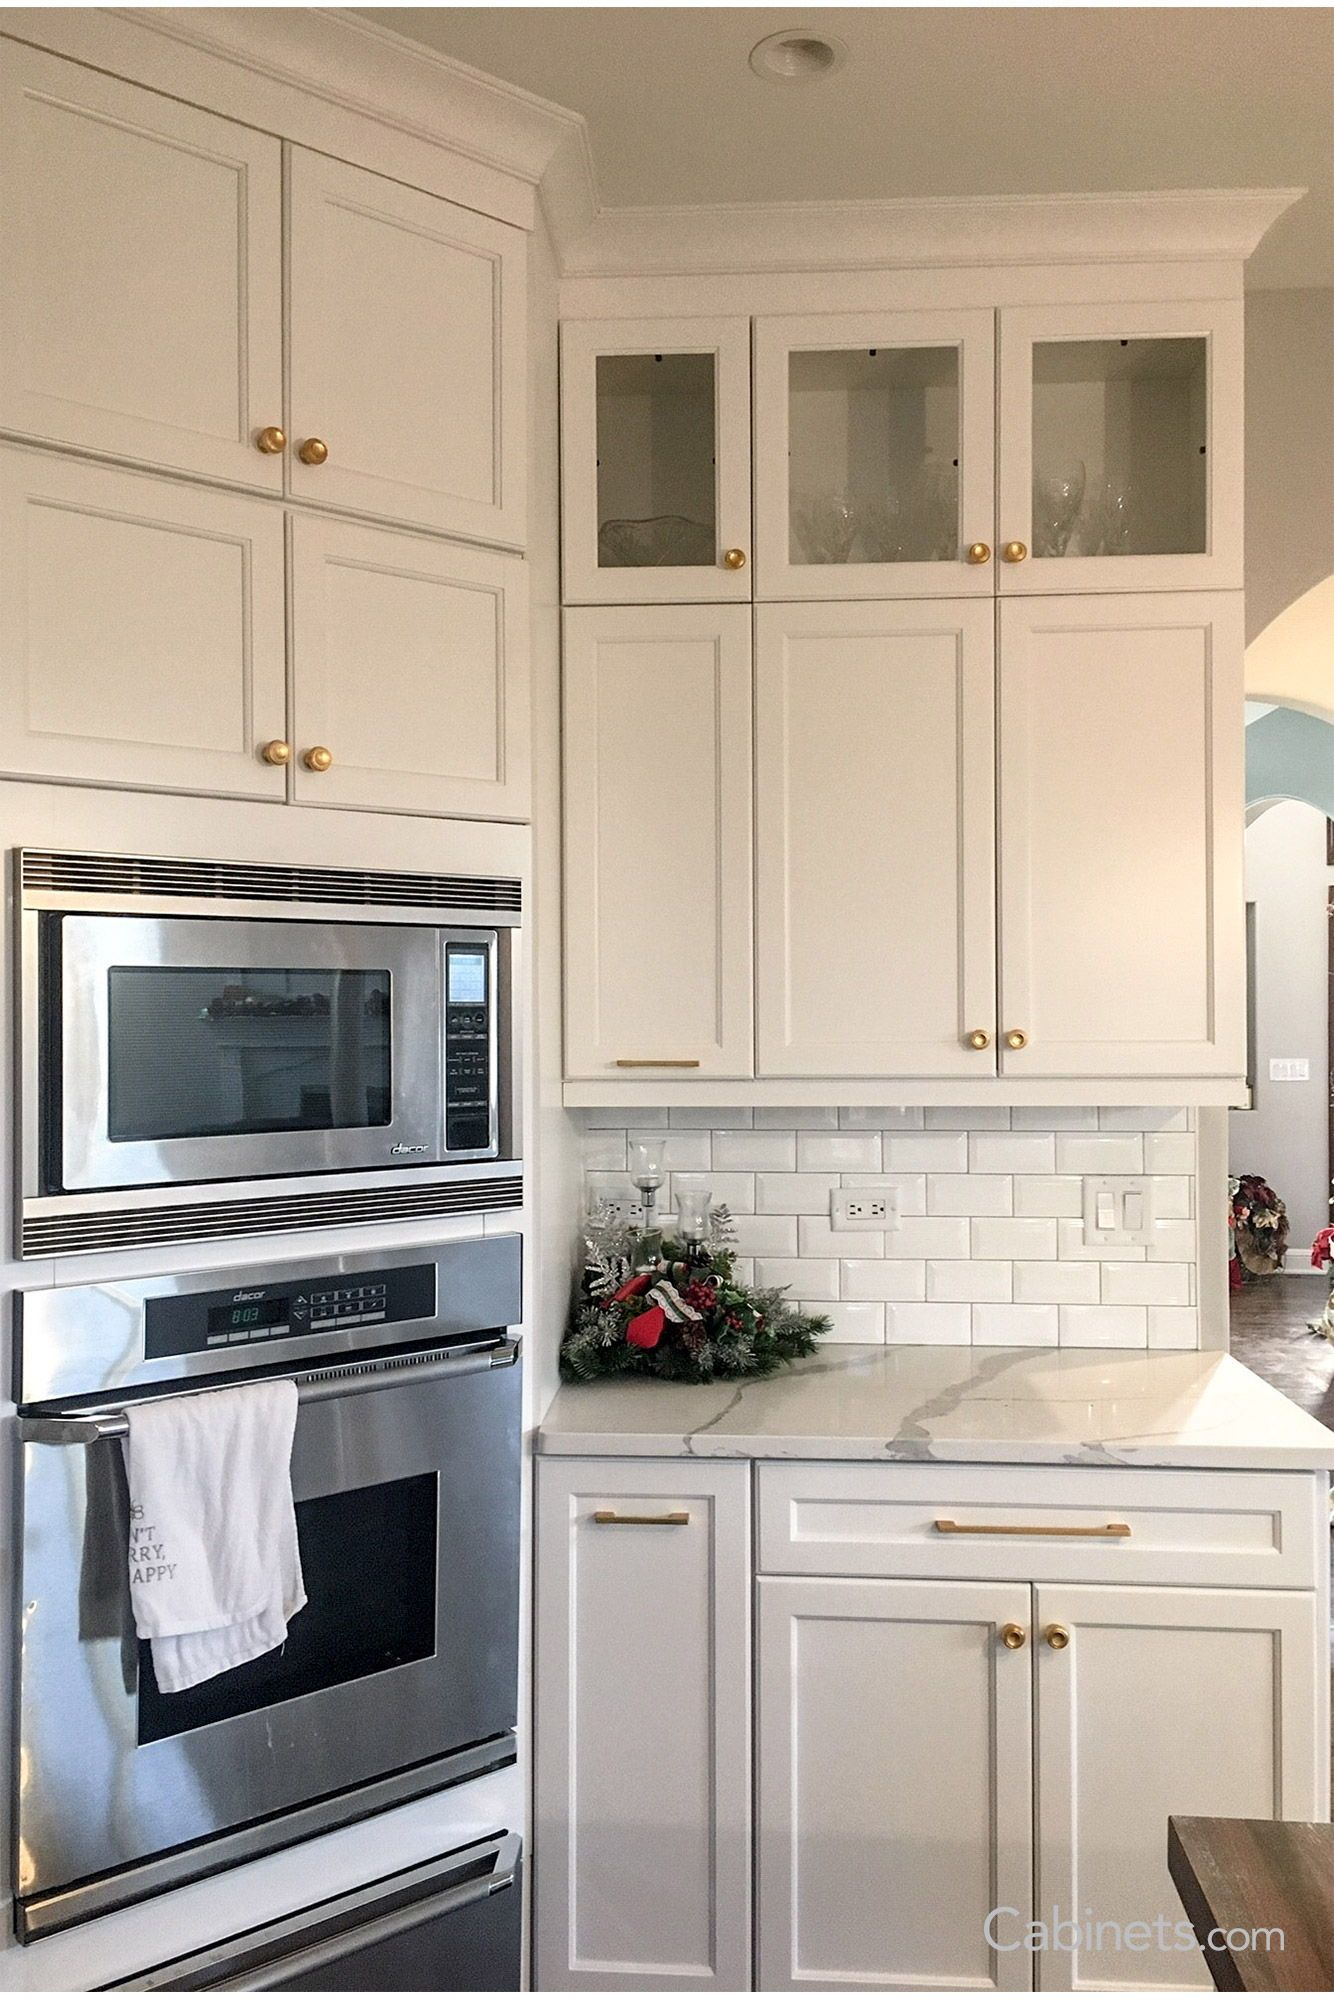 Are White Kitchen Cabinets Out Of Style We don't think that bright white cabinets will ever go out of